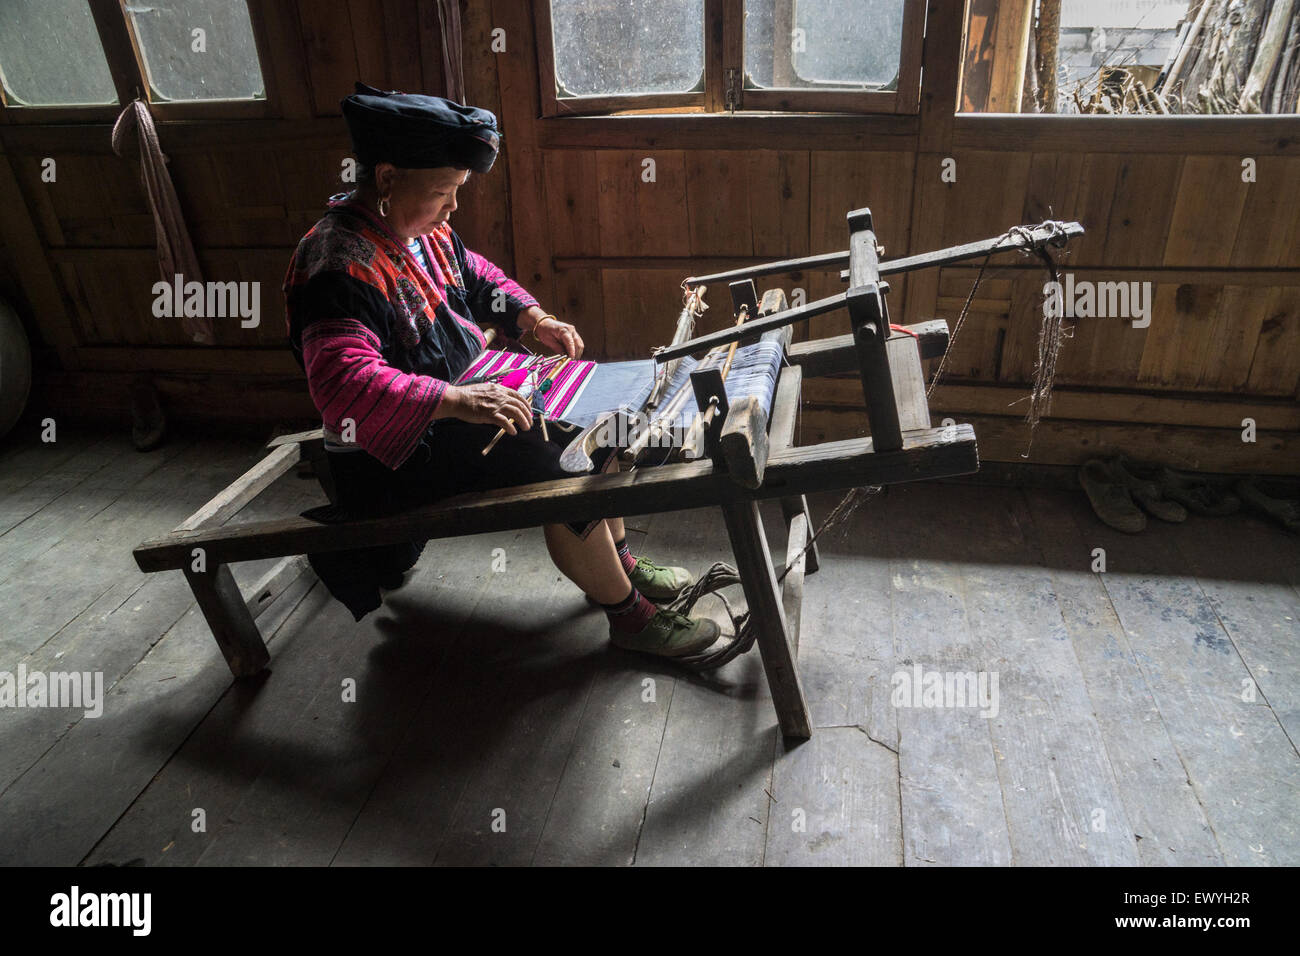 Femme chinoise tissu tissage, Guilin, Chine Photo Stock